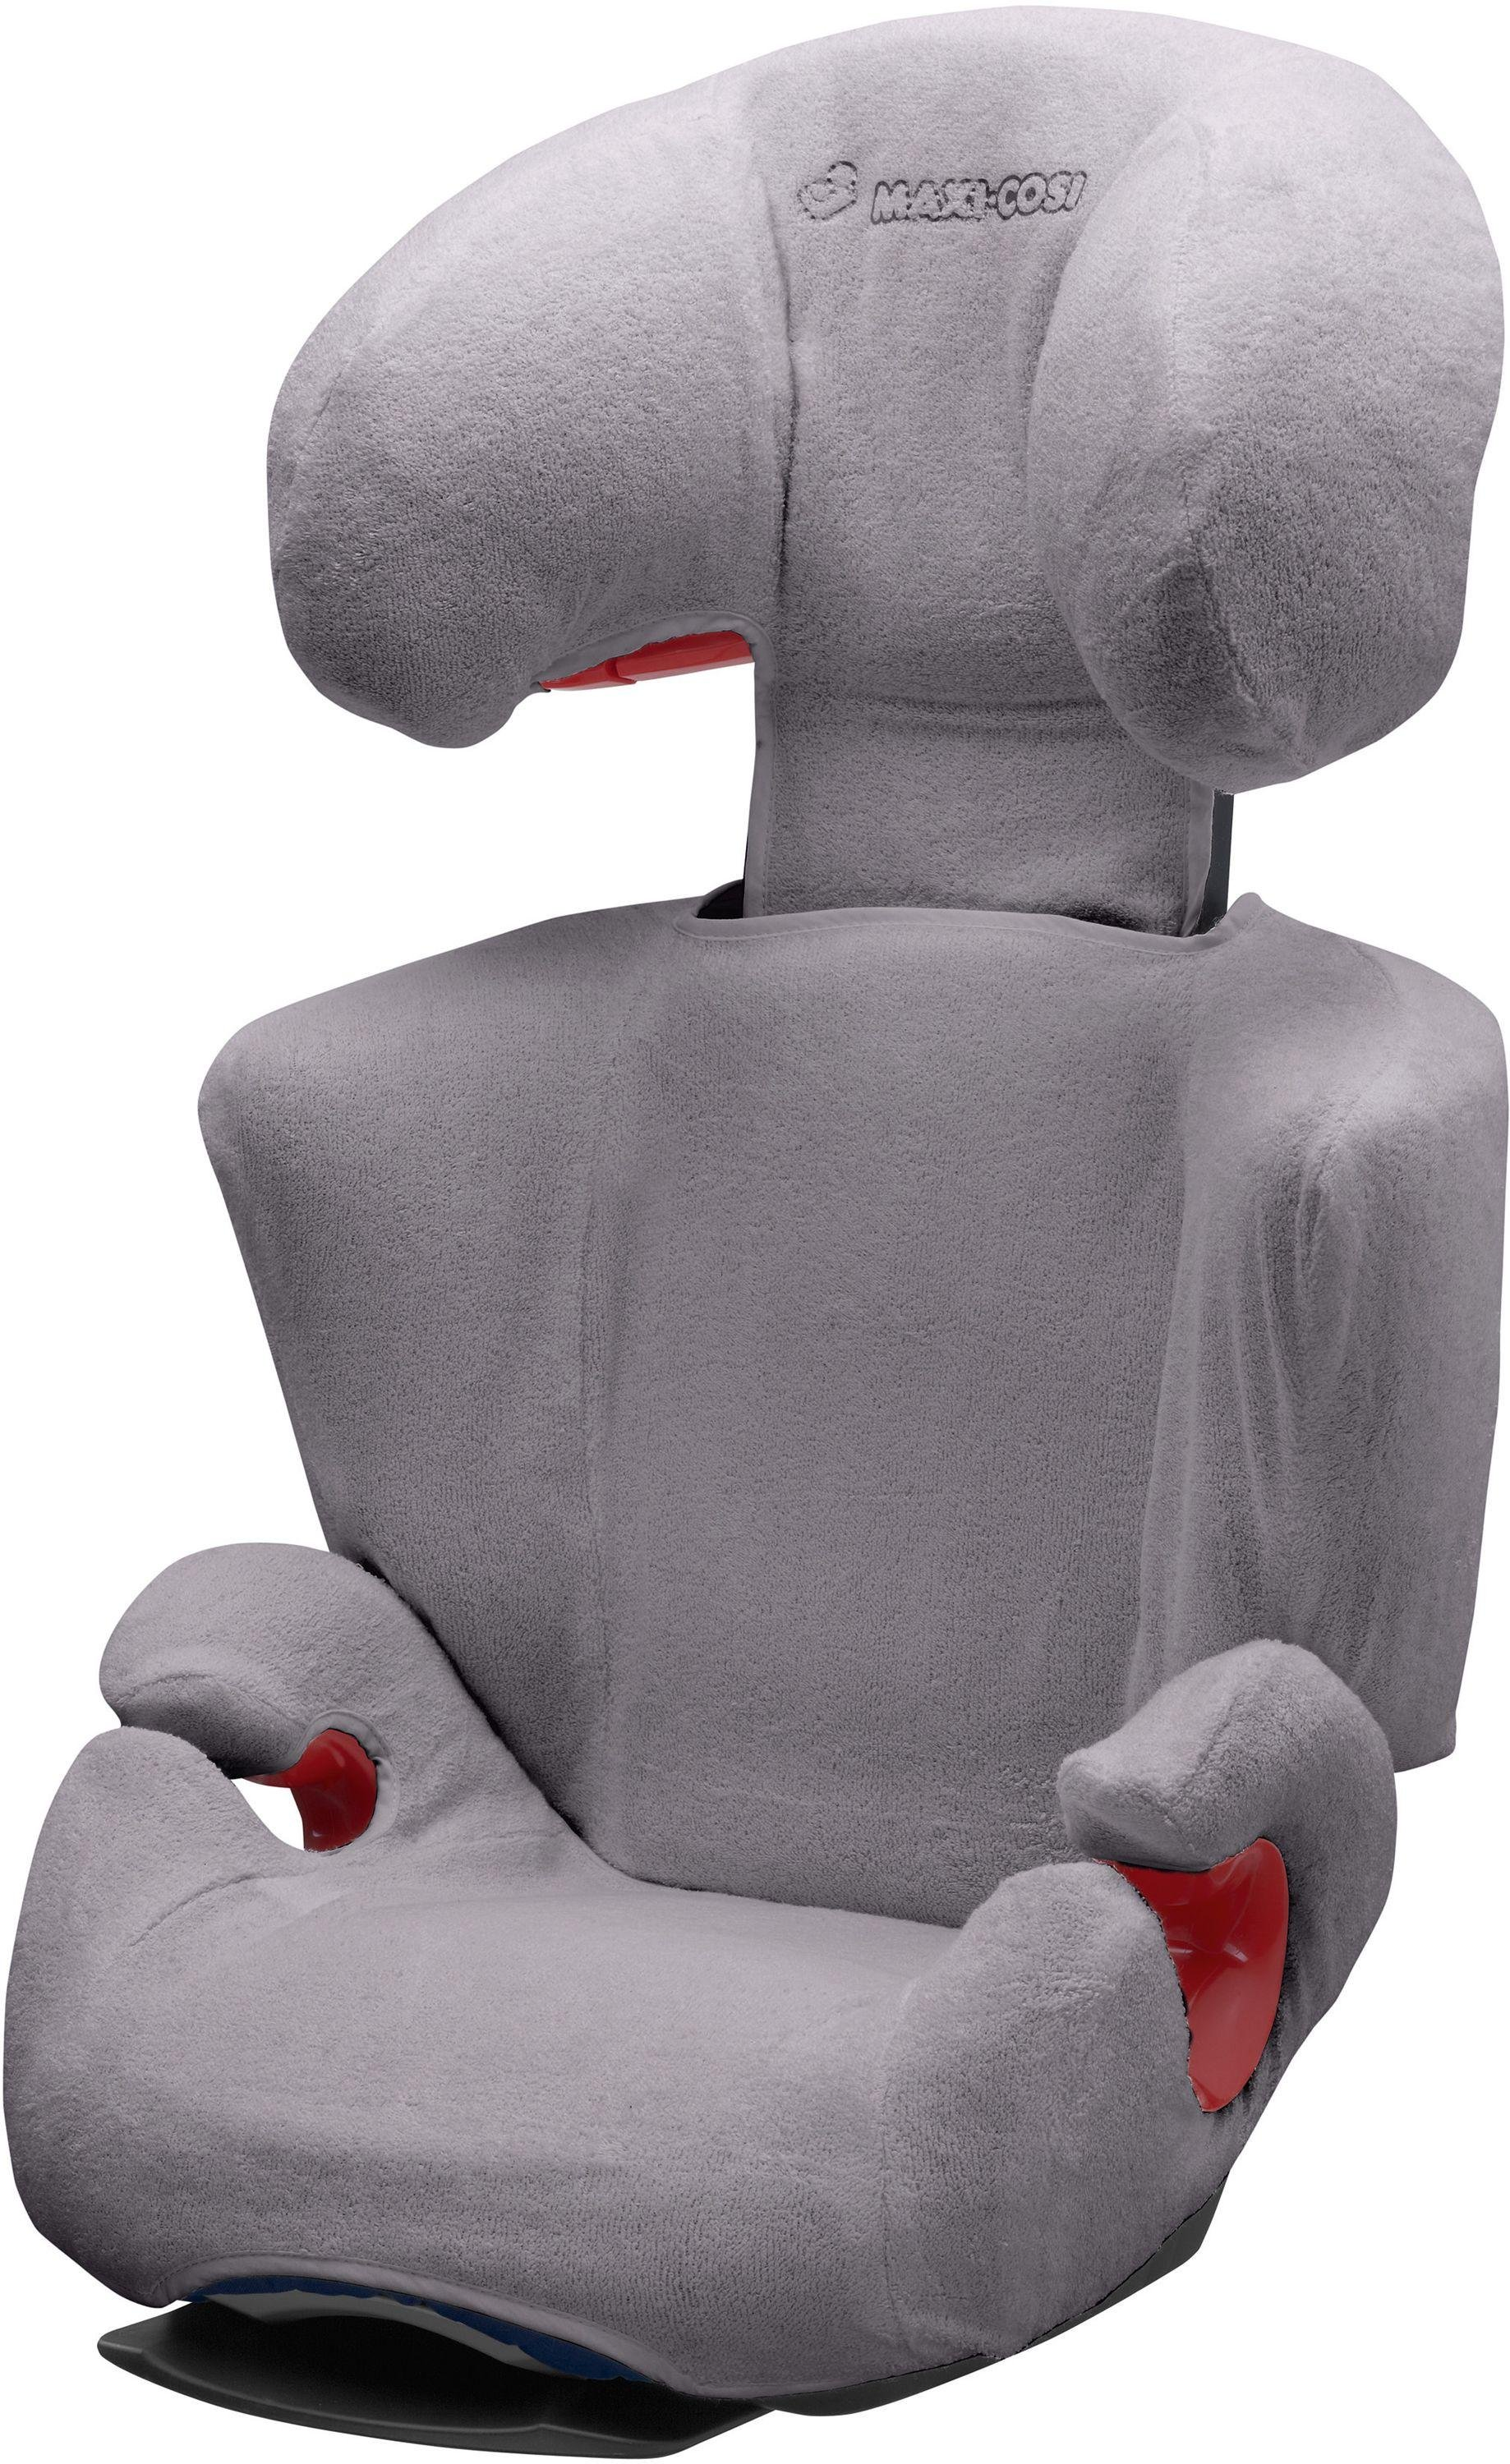 Image of Maxi-Cosi - Summer Rodi AP, XP, SPS - Car Seat Cover - Cool Grey